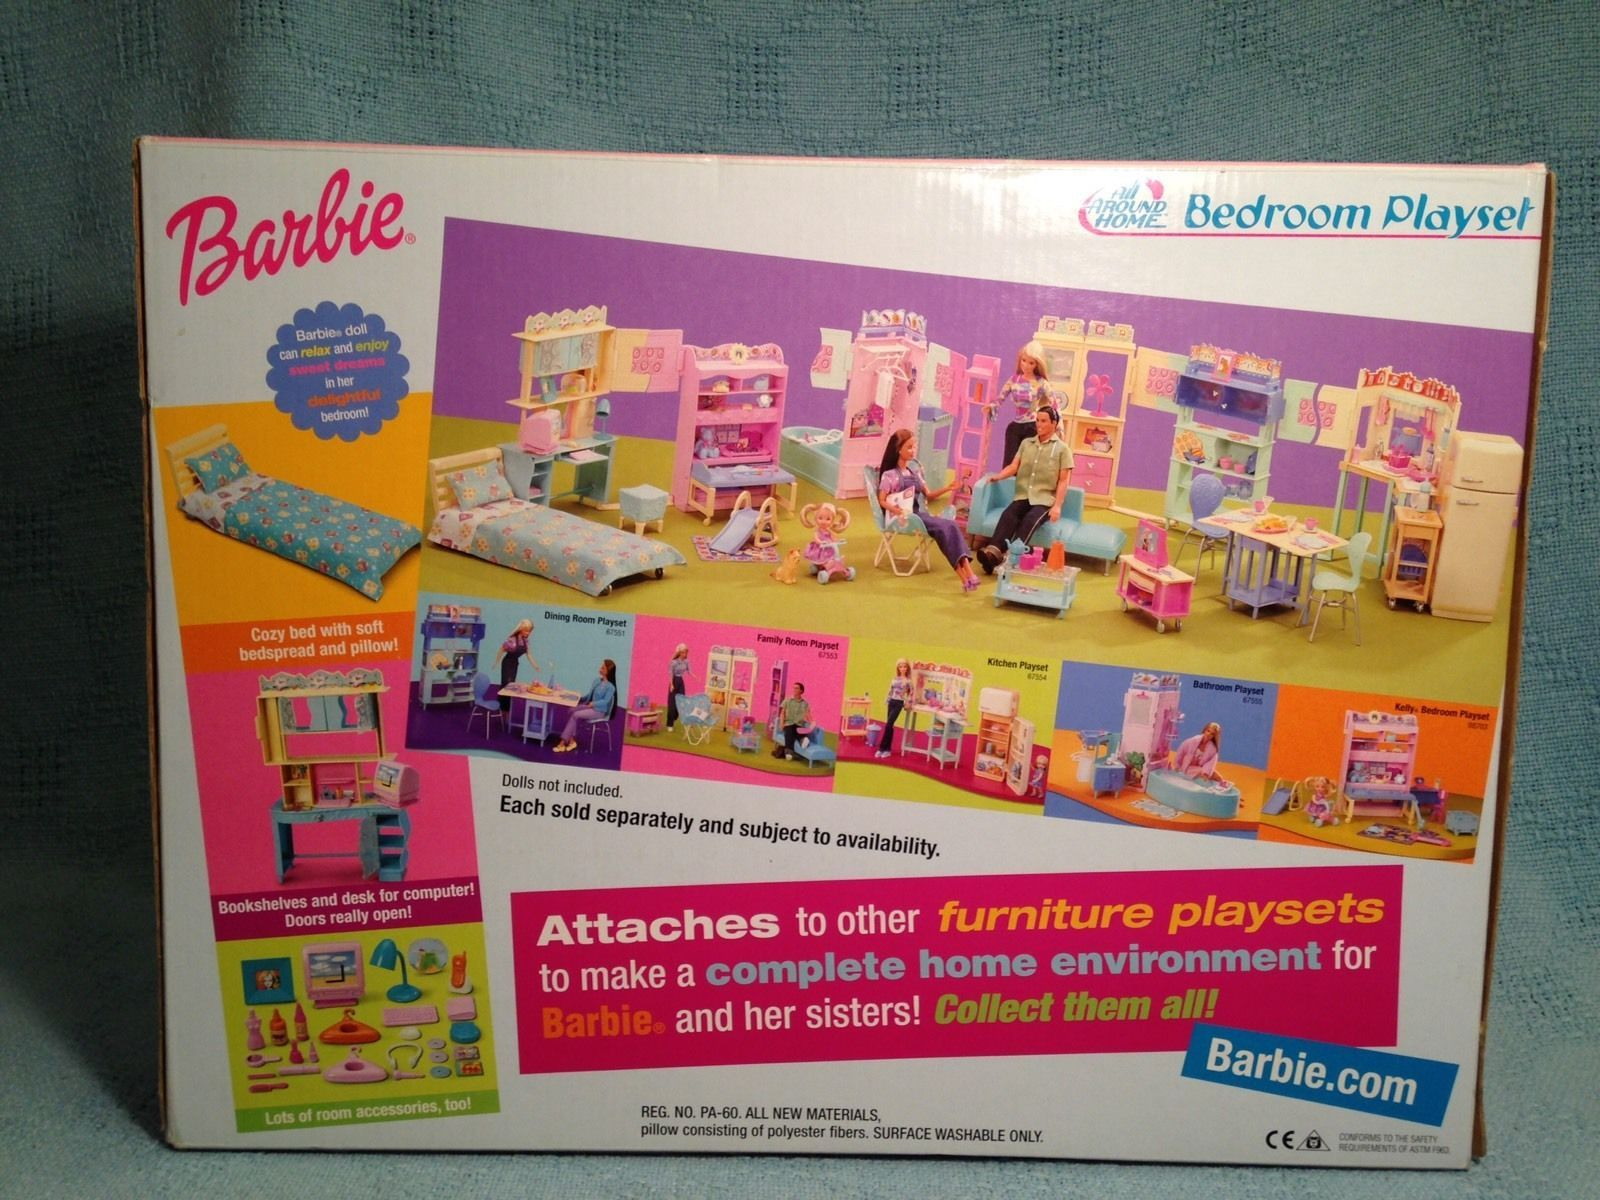 2000 BARBIE ALL AROUND THE HOME BEDROOM PLAYSET PLAY